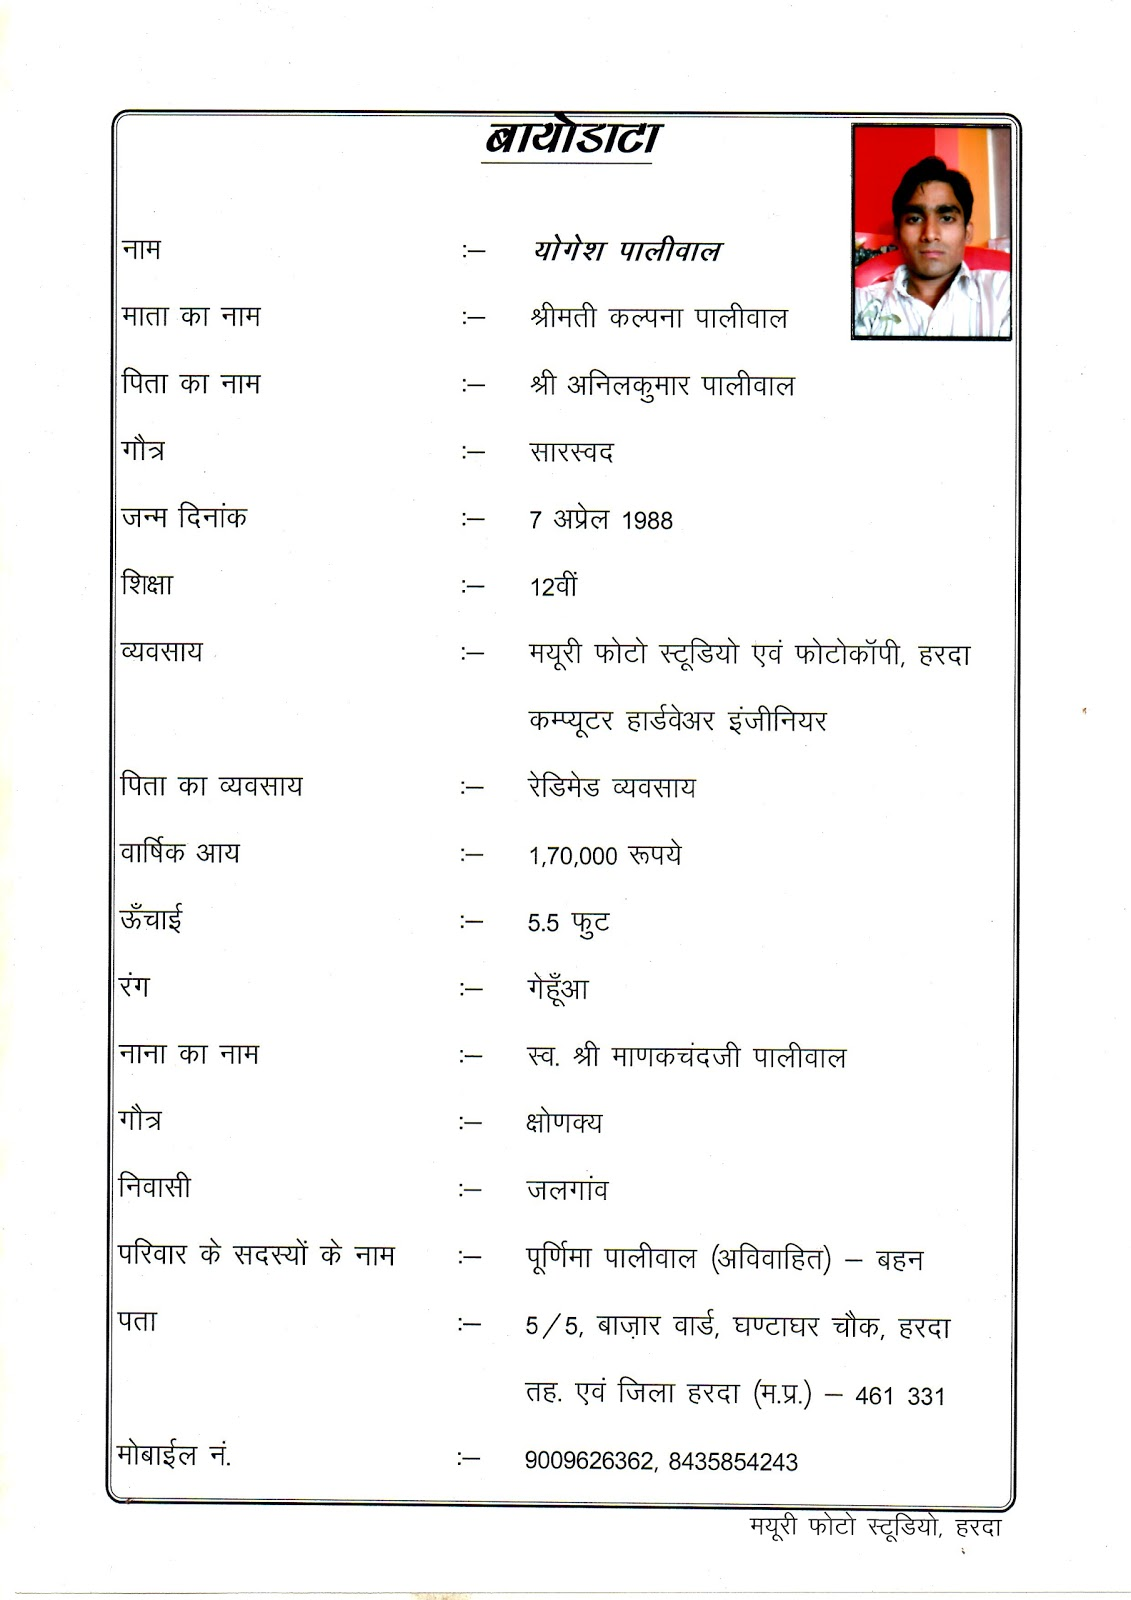 sample of cv resume biodata format for marriage hindi hindu matrimonial biodata format biodata format for marriage hindi biodata format in hindi for marriage cv format